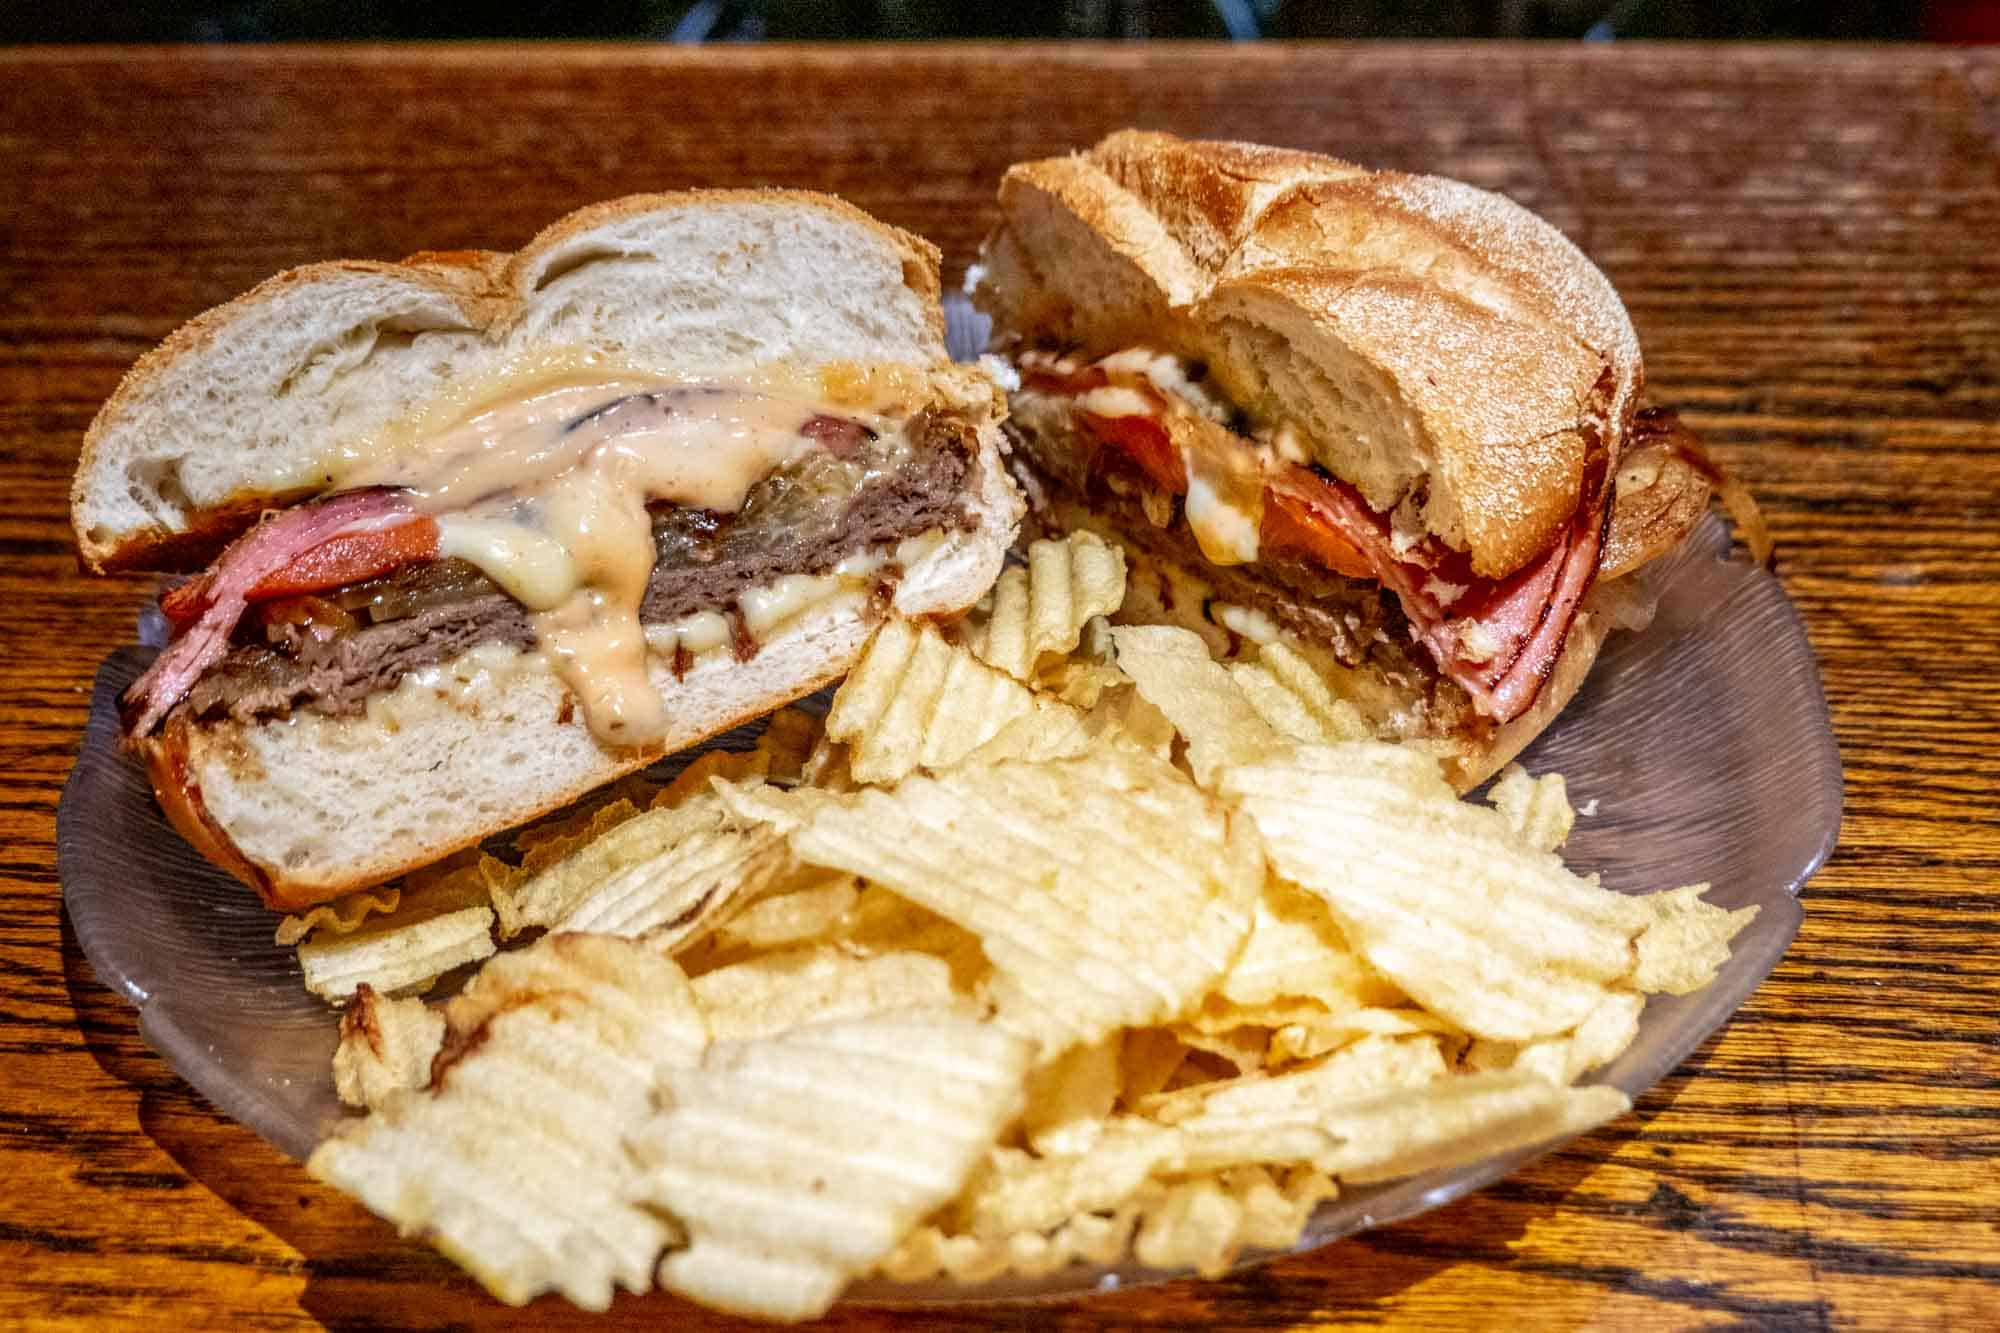 Sandwich with roast beef and orange sauce on a round roll on a plate with potato chips